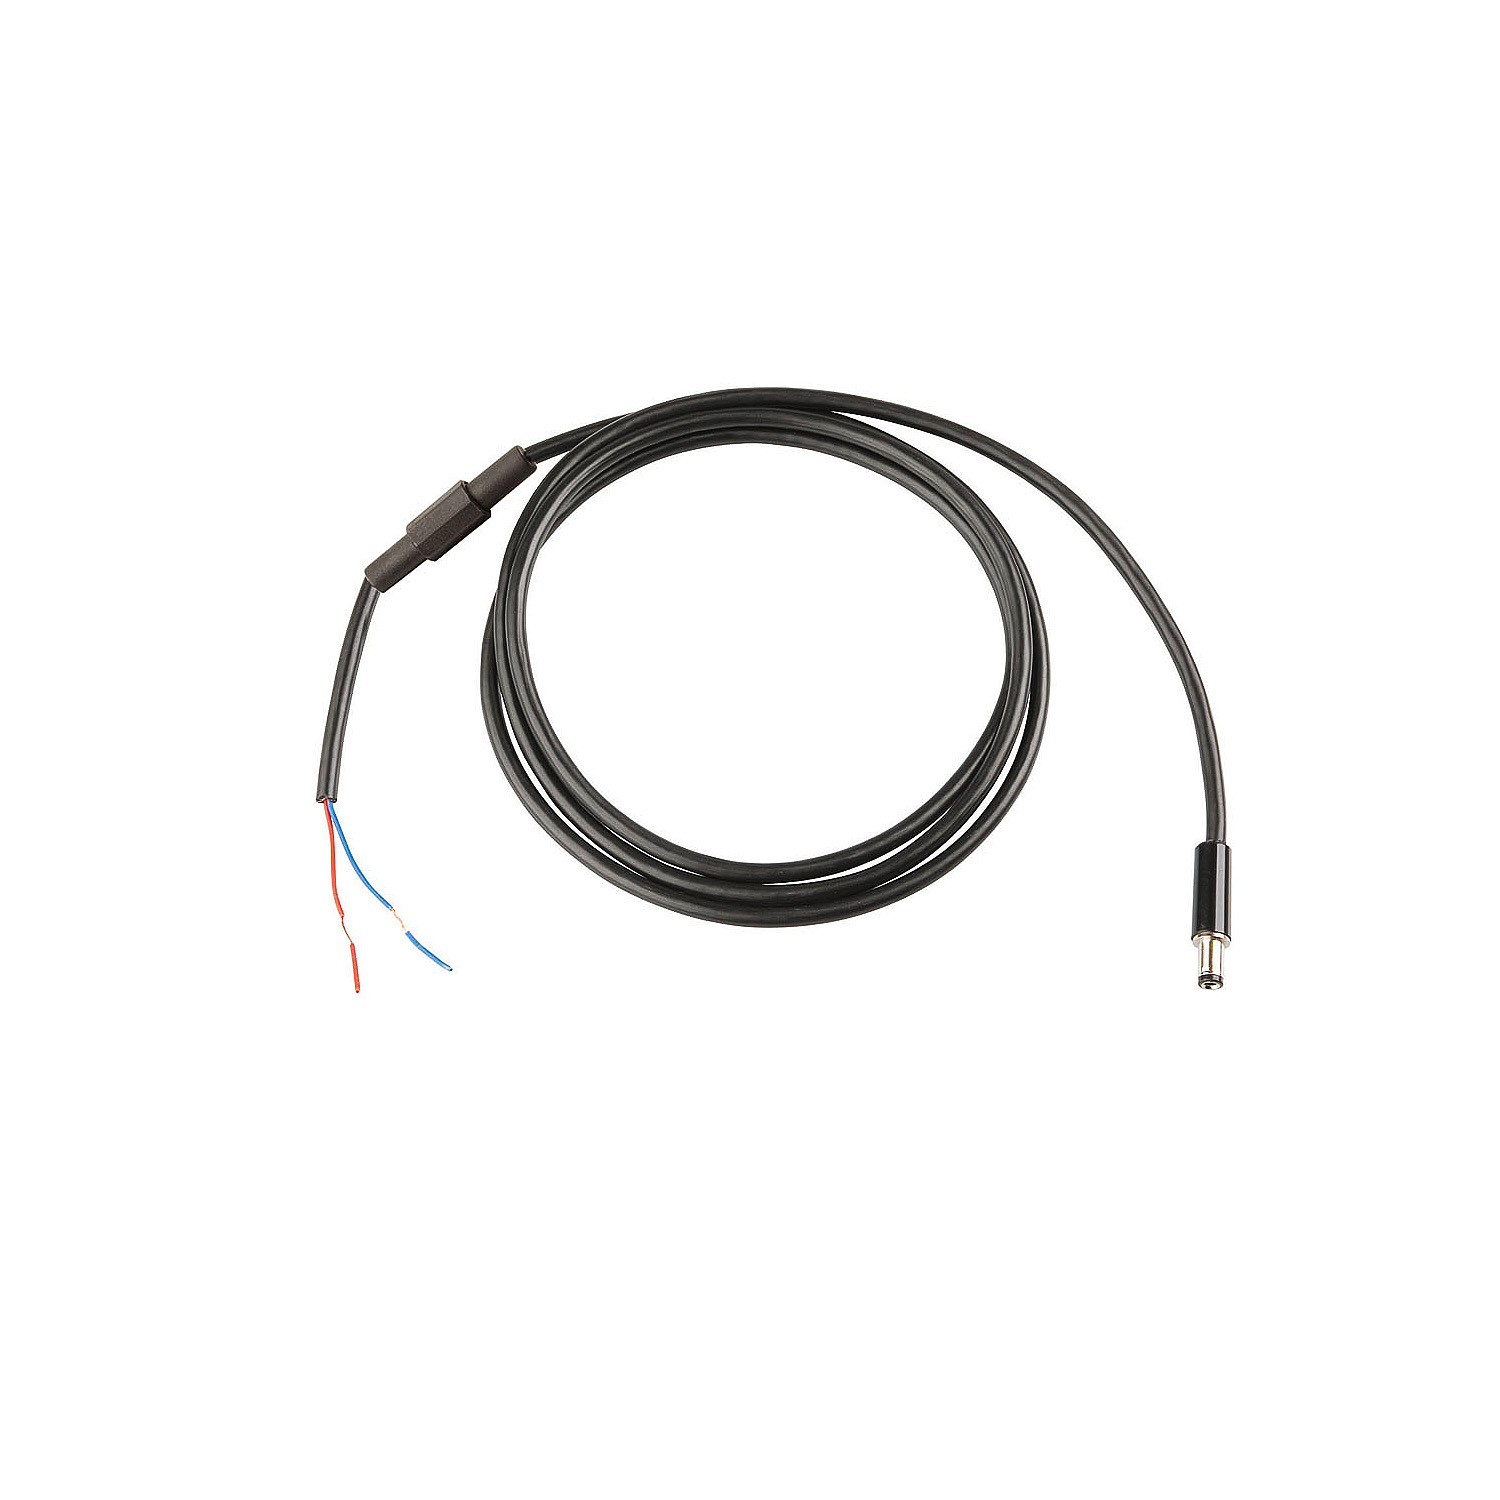 Omp Italy Intercom Power Supply Cable To Connect Tech Race